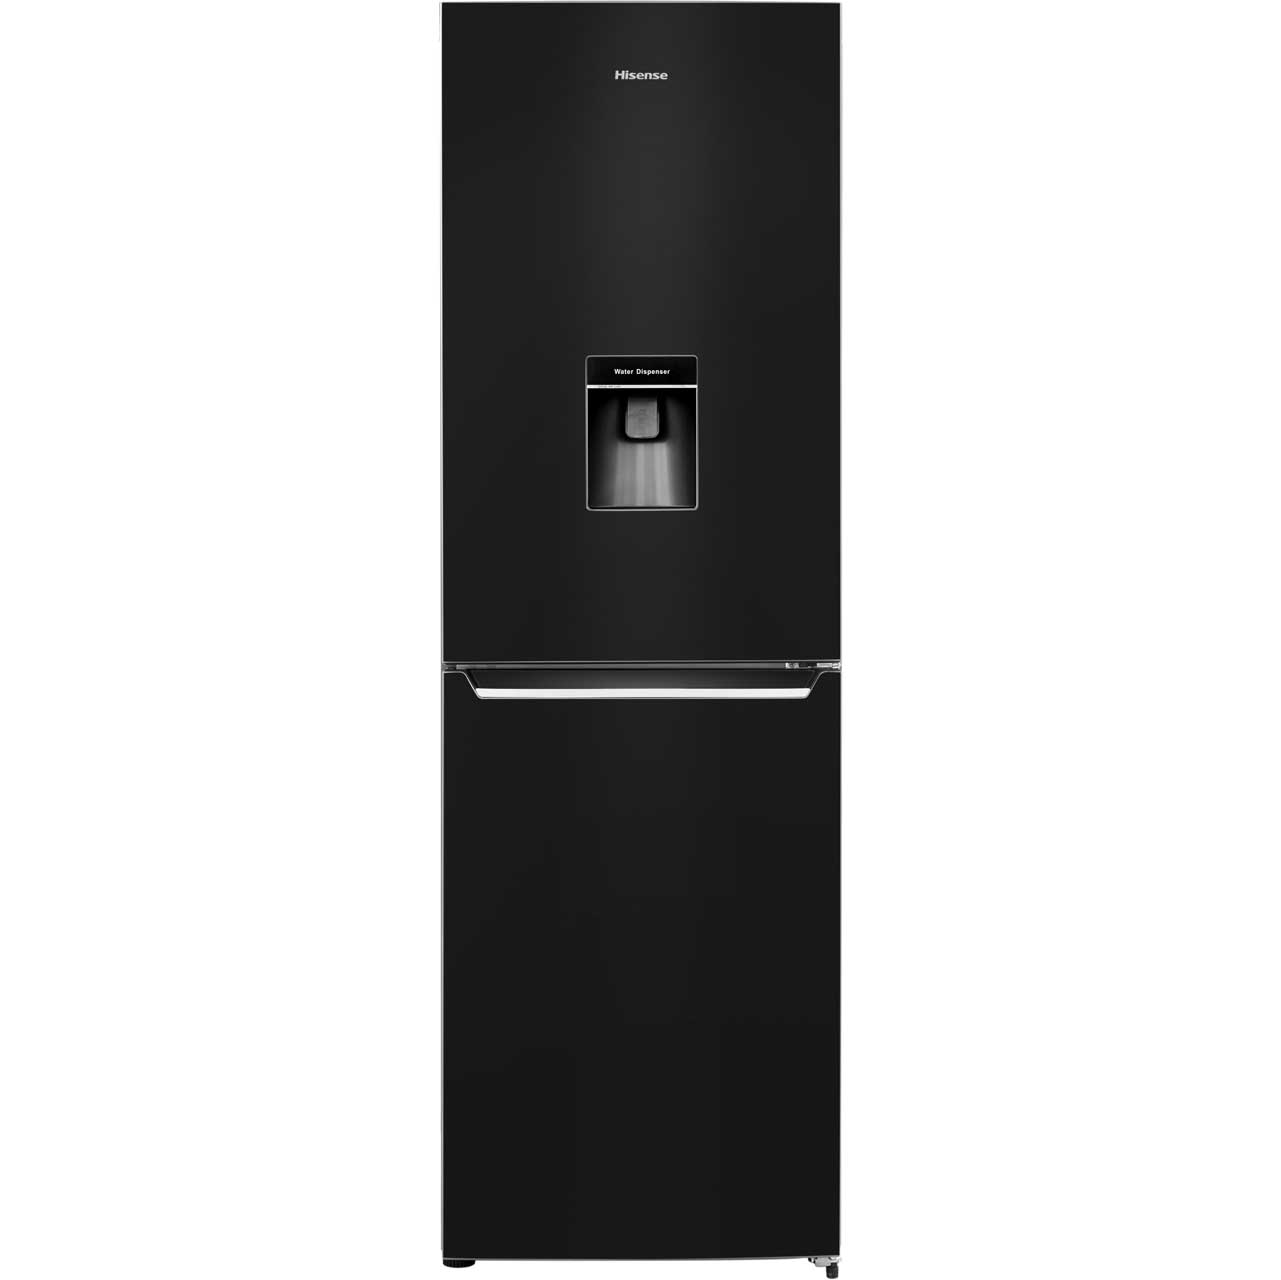 Hisense RB381N4WB1 Free Standing Fridge Freezer Frost Free in Black